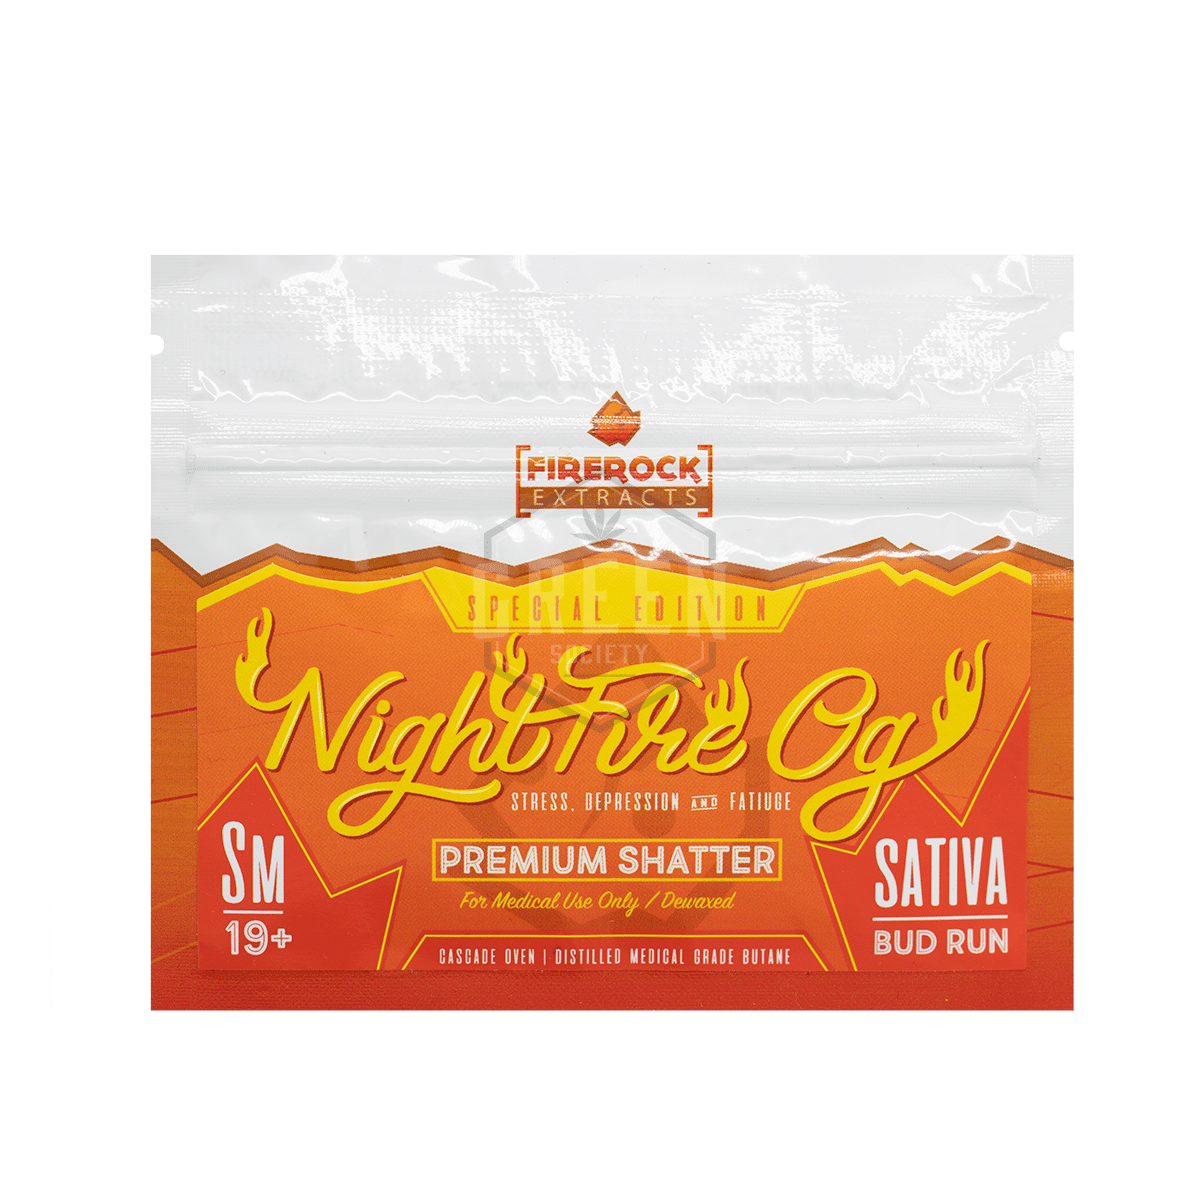 NightFire OG Shatter by Firerock Extracts by Green Society - Image © 2018 Green Society. All Rights Reserved.